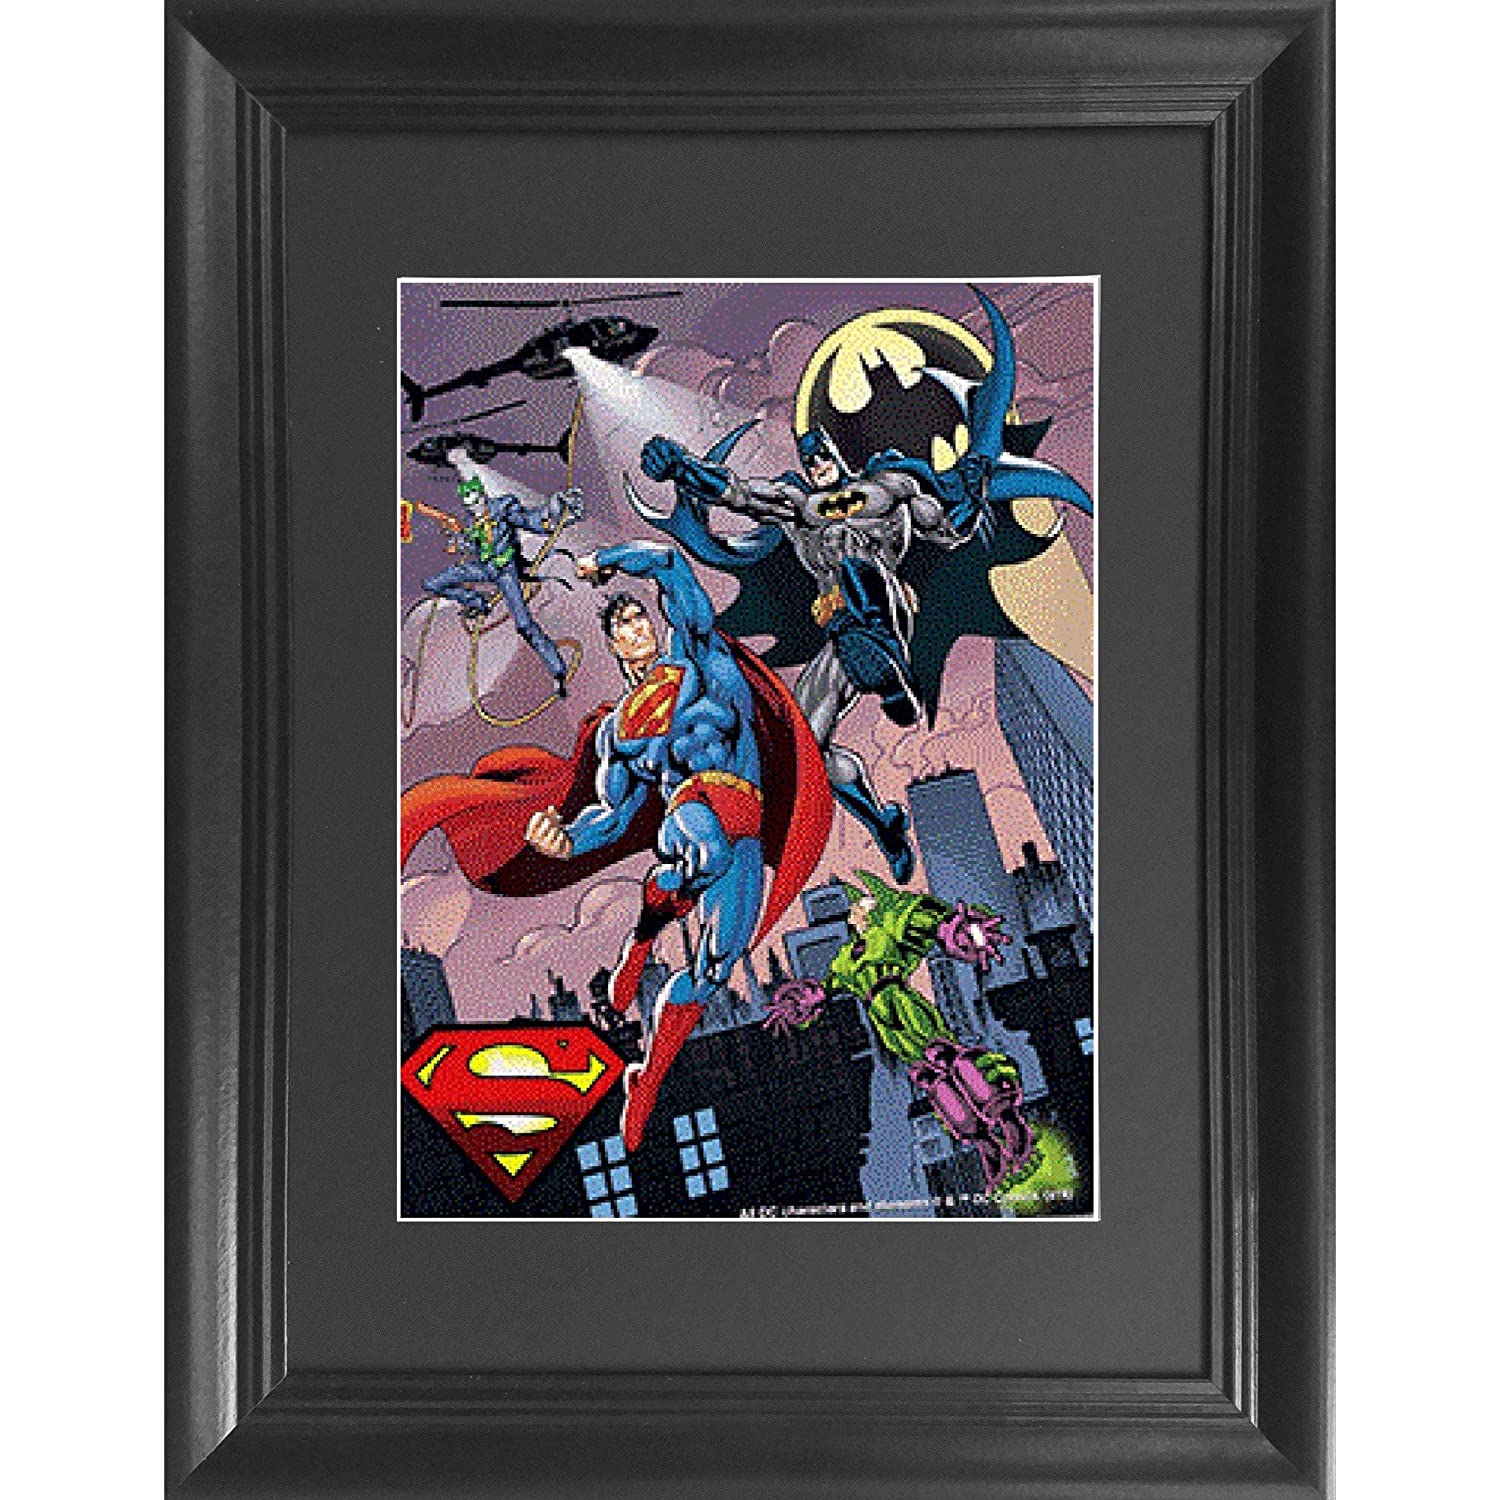 Batman vs Superman 3D Poster Wall Art Decor Framed Print | 14.5x18.5 | Lenticular Posters & Pictures | Memorabilia Gifts for Guys & Girls Bedroom | DC Comic Book Classic Superhero Movie Fan Picture